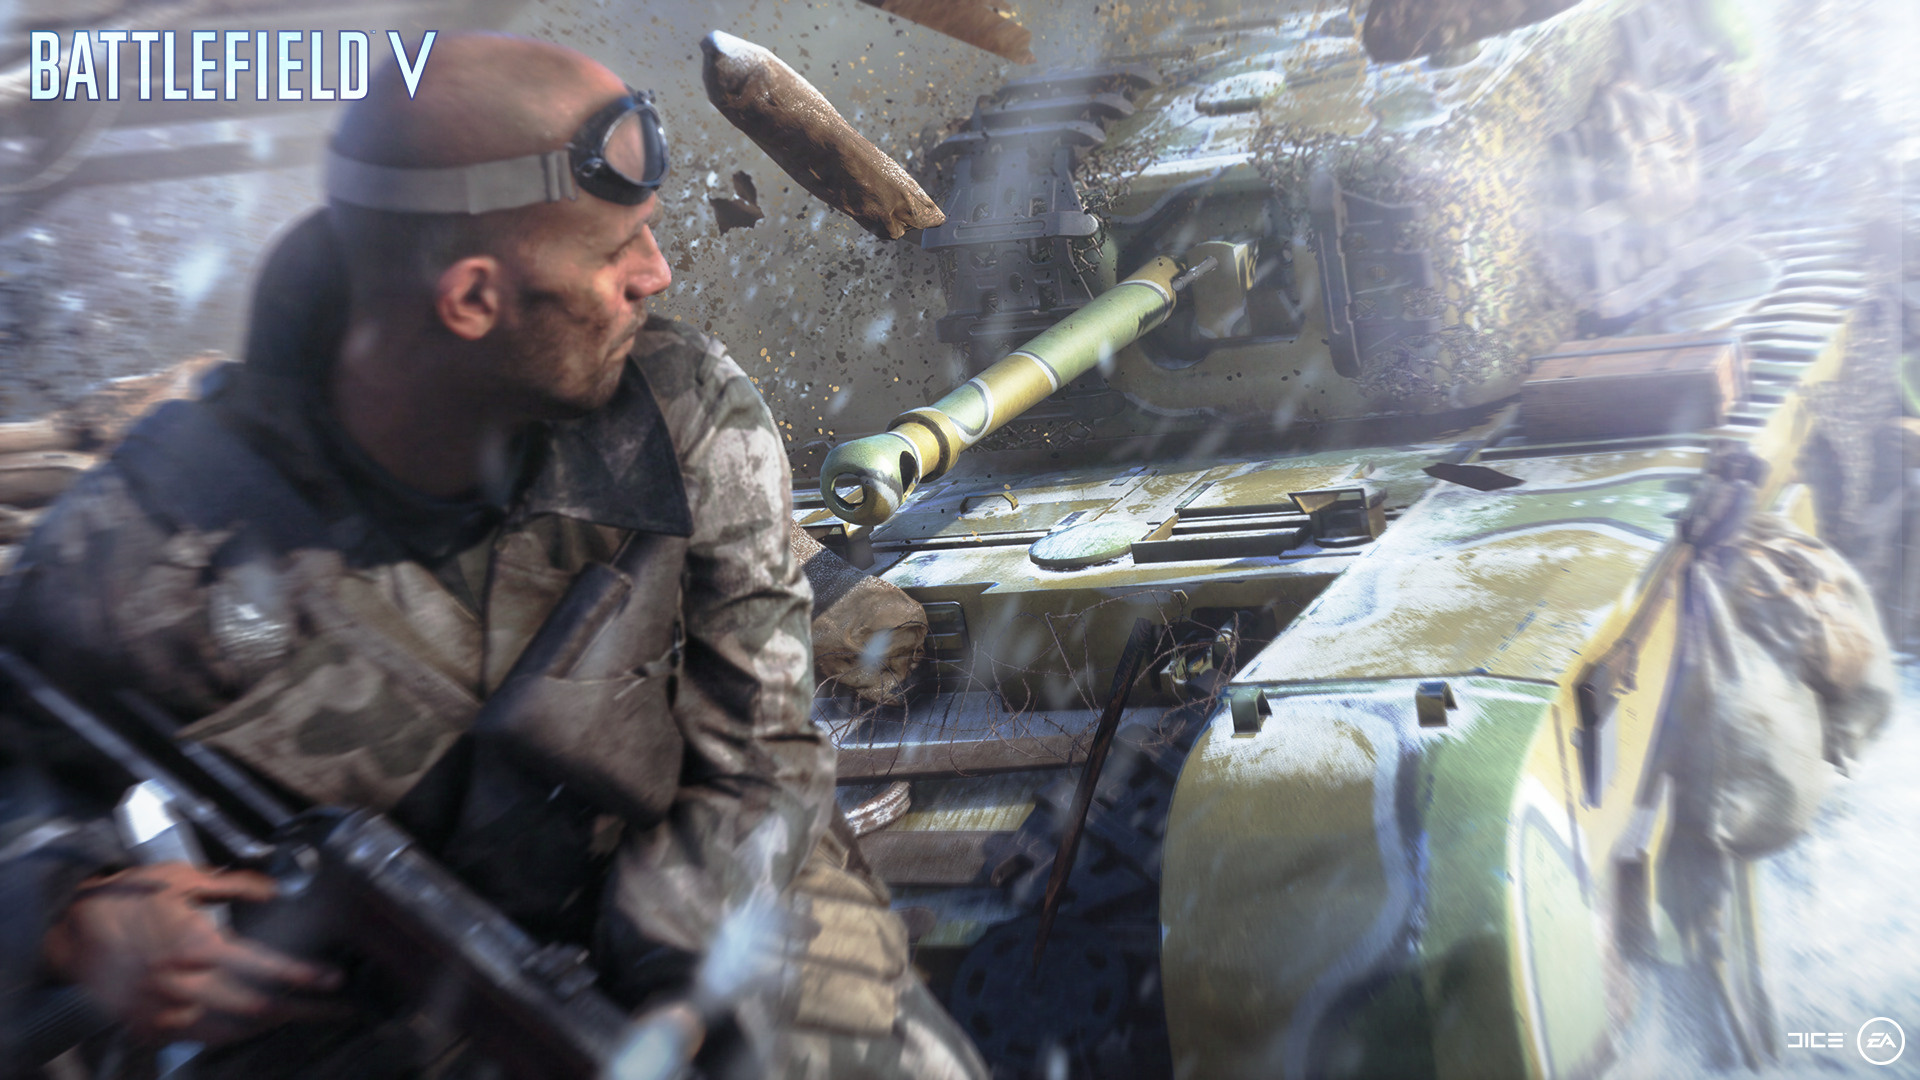 The First Major Update for Battlefield V Has Been Delayed - Push Square